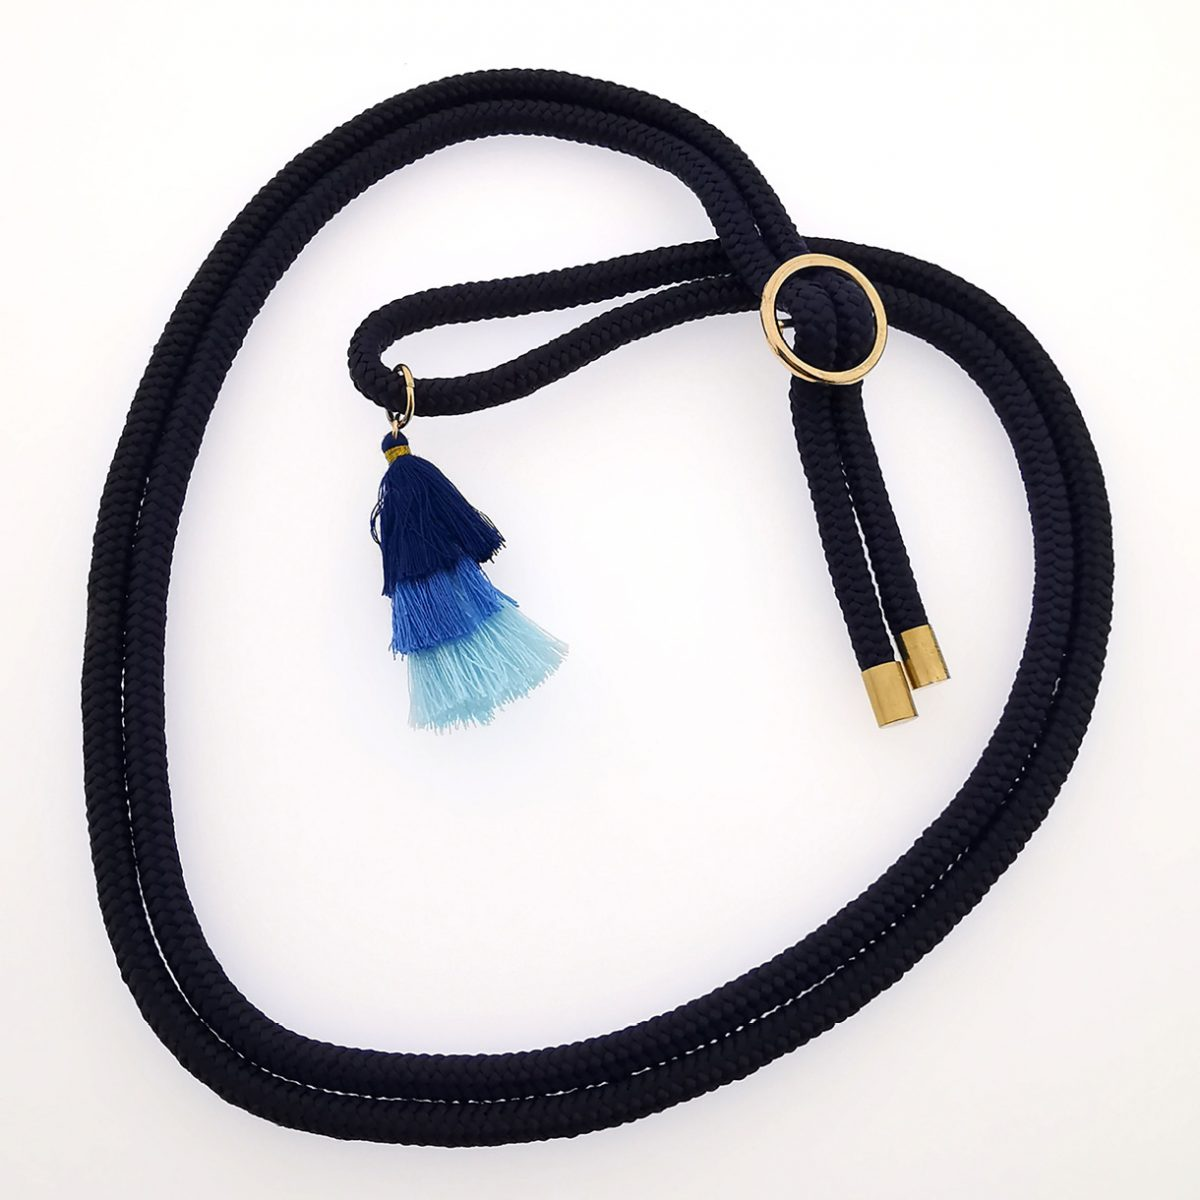 Keeweestyle Handykette Switch Wechselband Navy Gold1